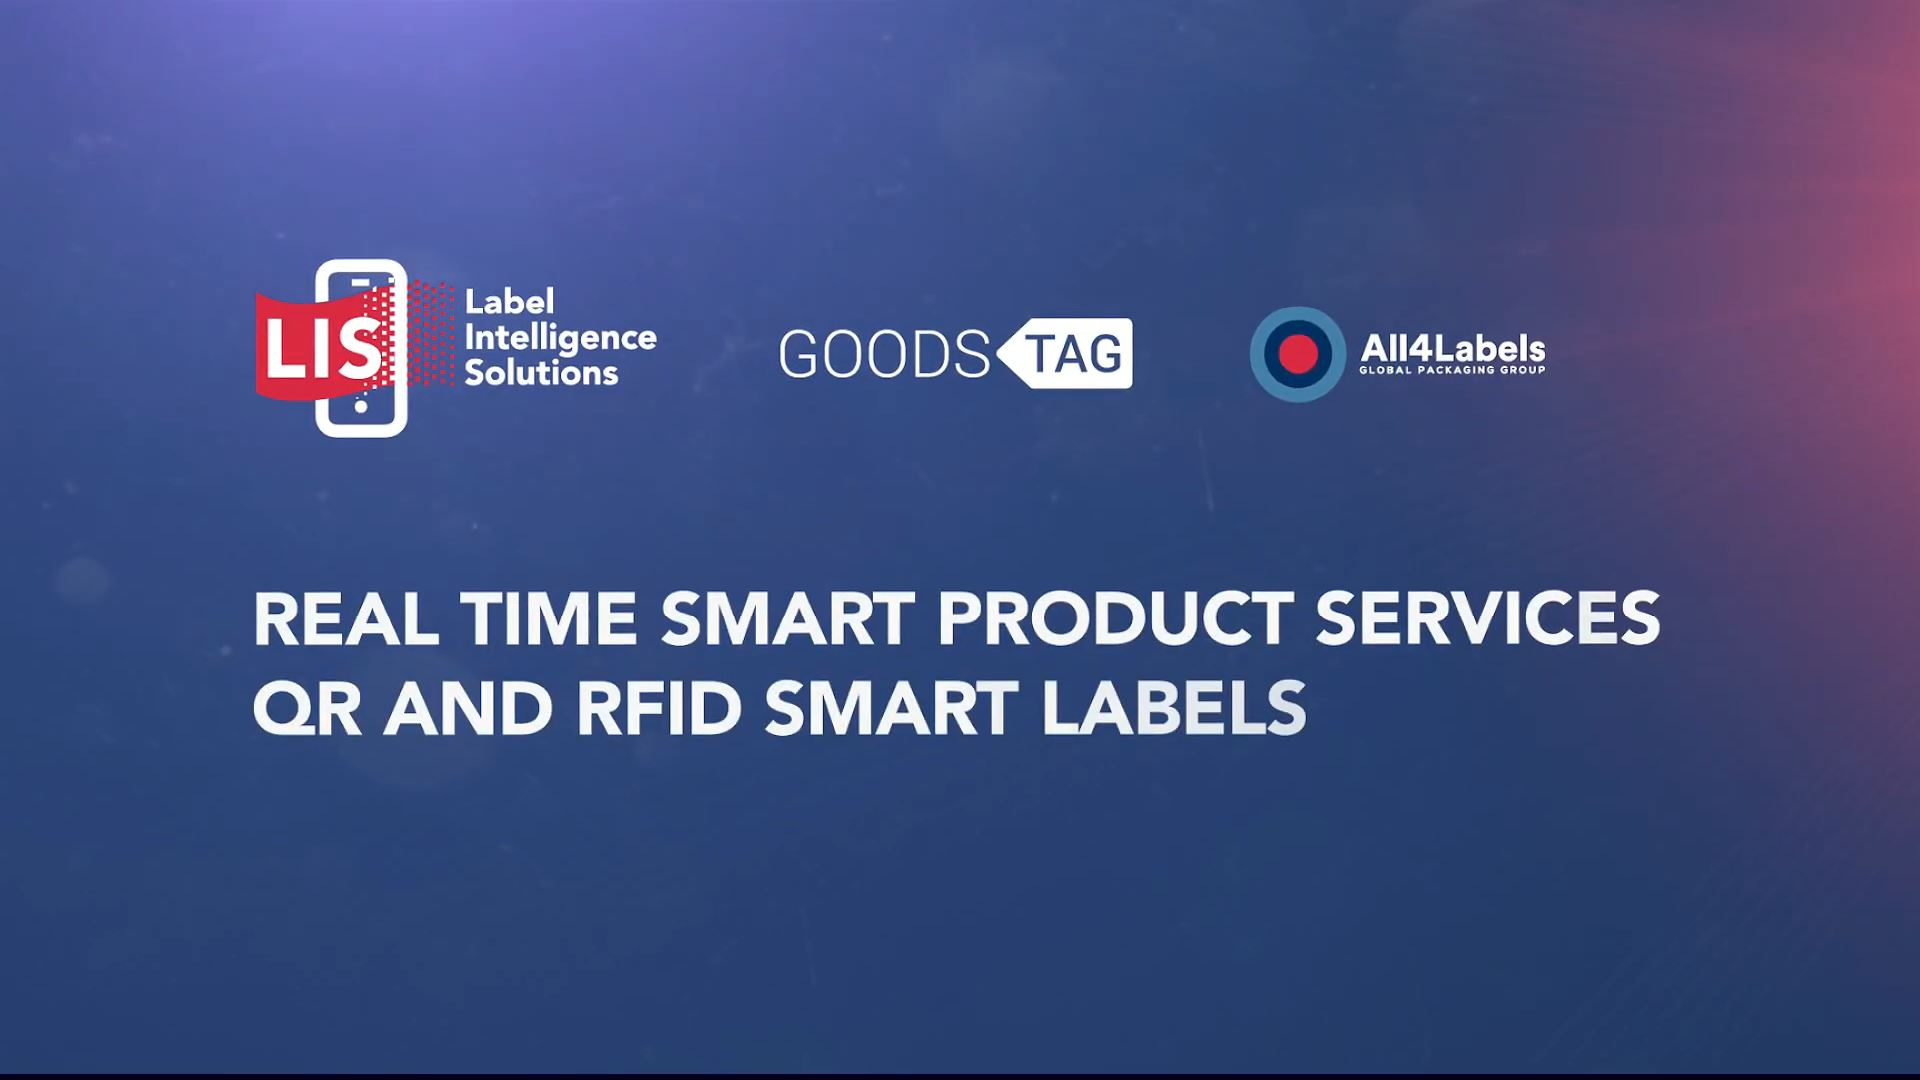 Real Time Smart Product Services Video Still